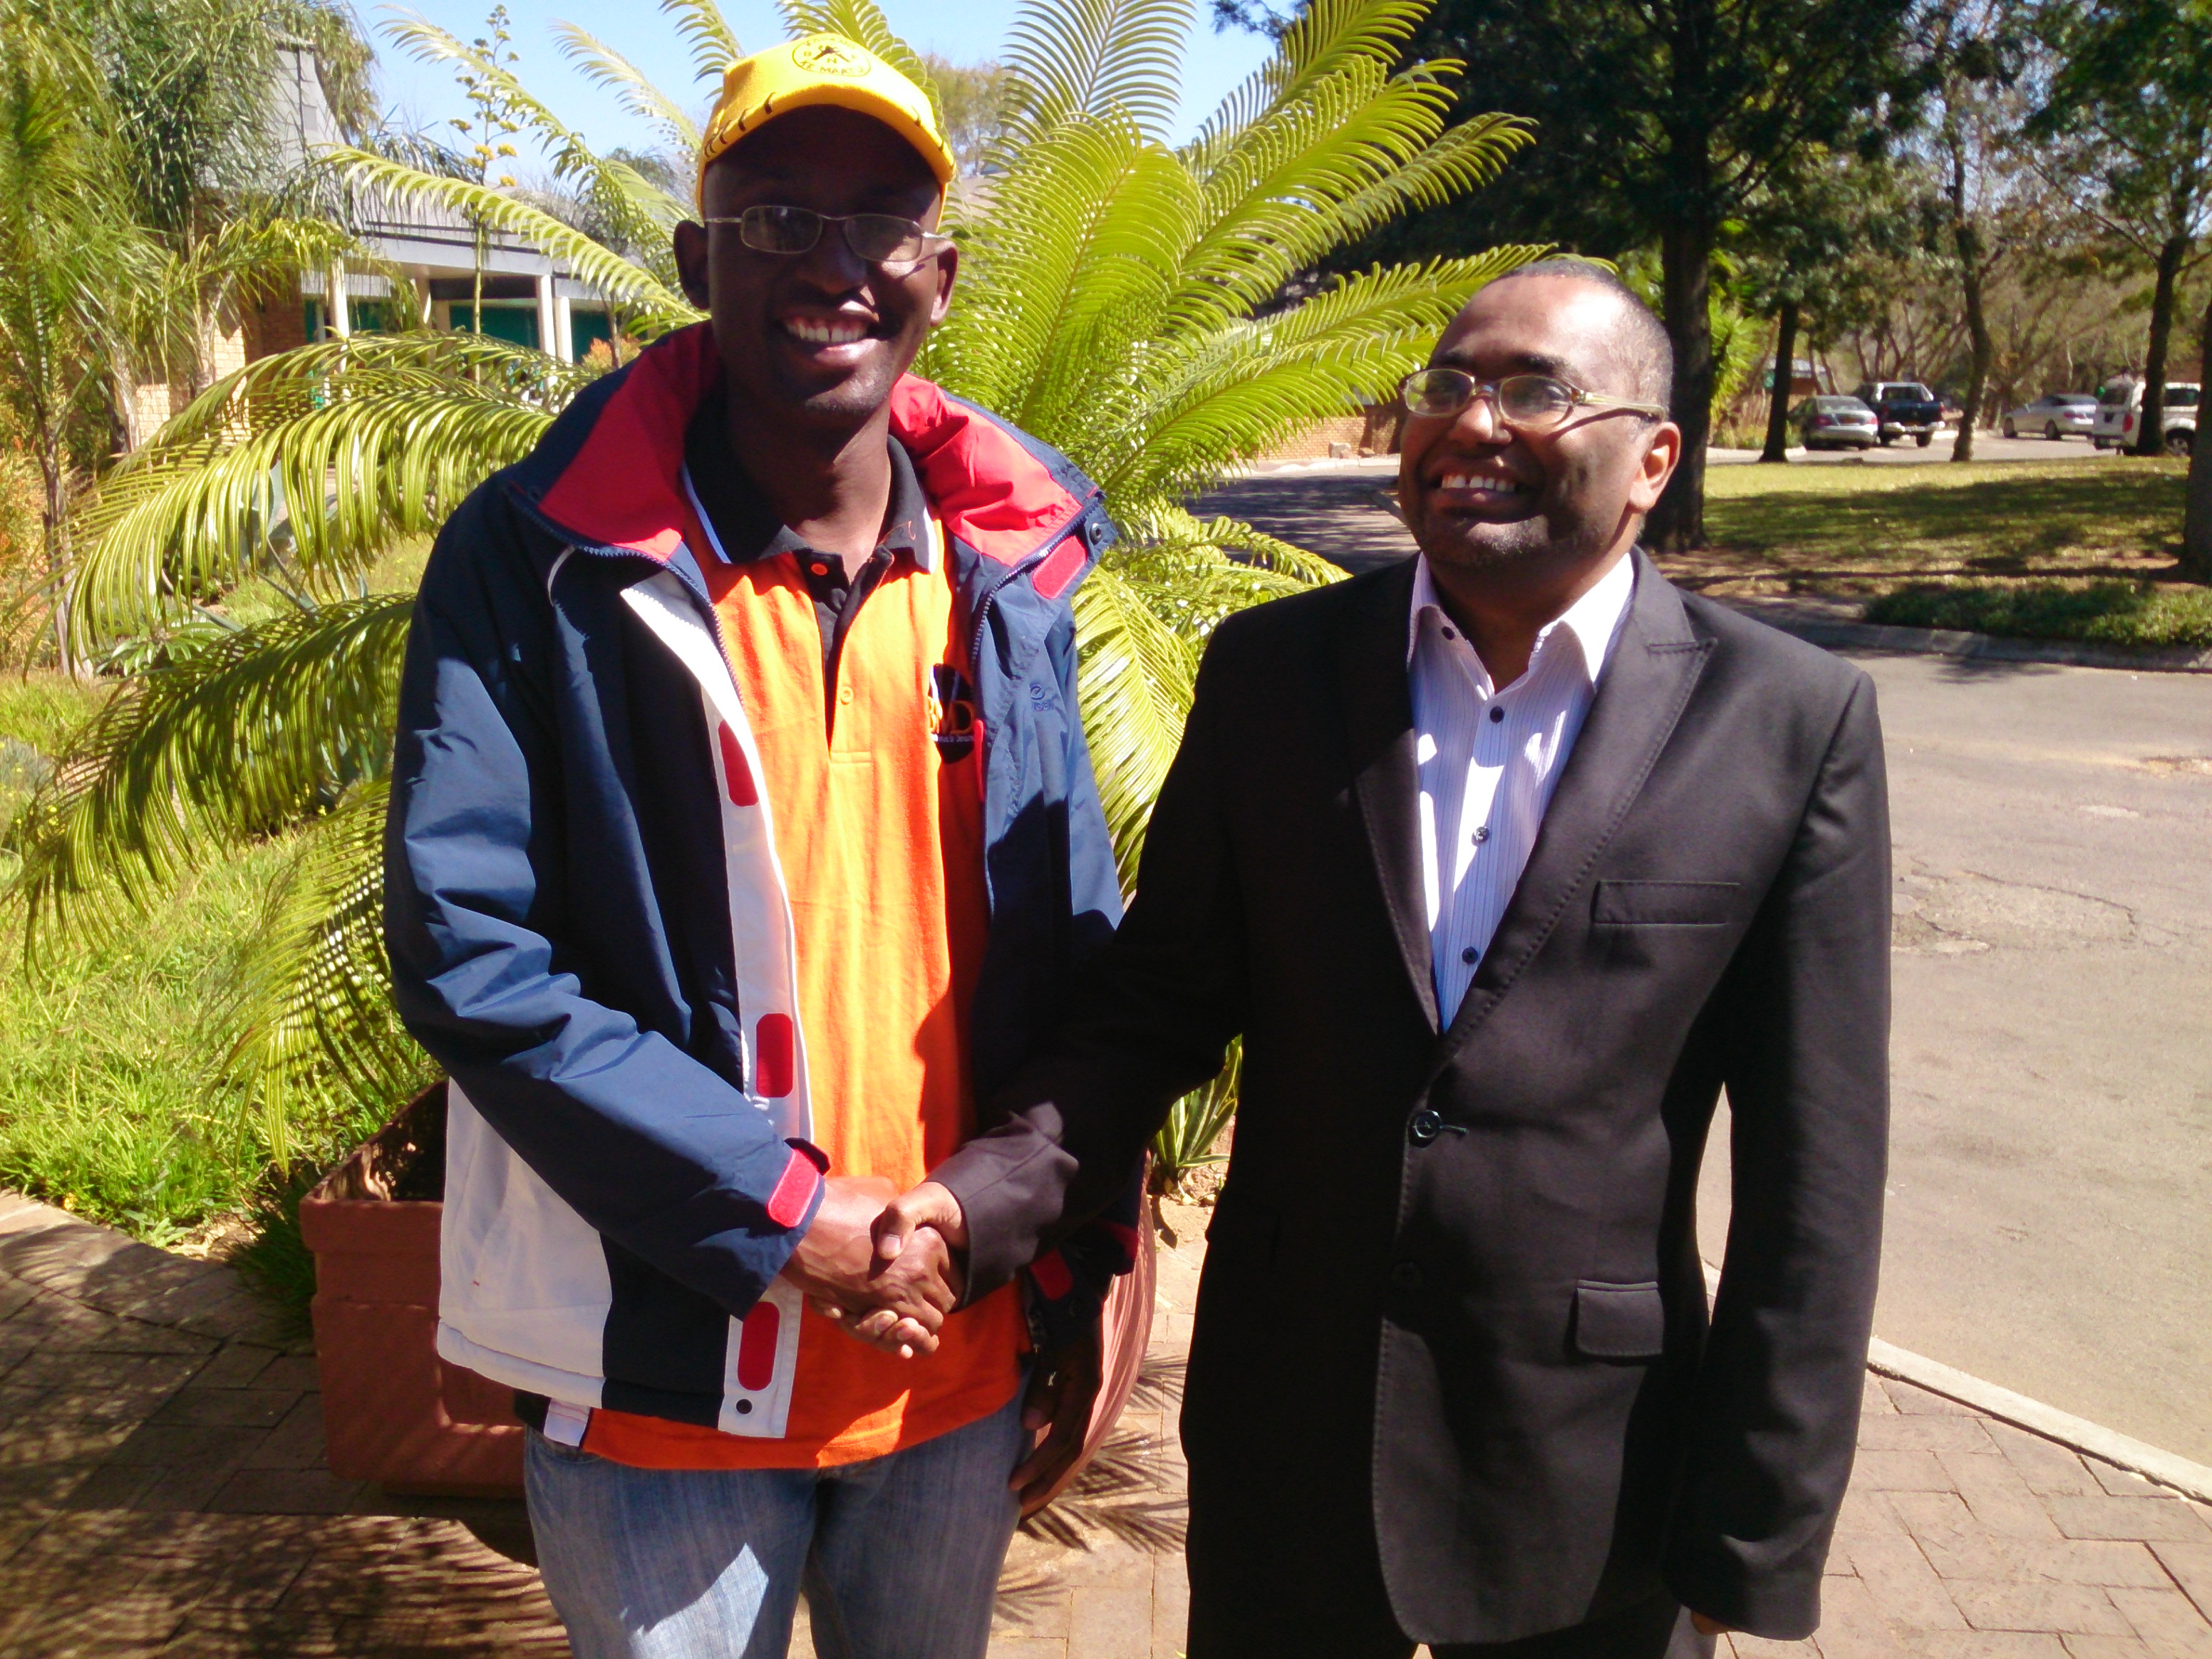 With Haskins Nkaigwa, former Mayor of Gaborone and current Gaborone North Member of Parliament of Botswana